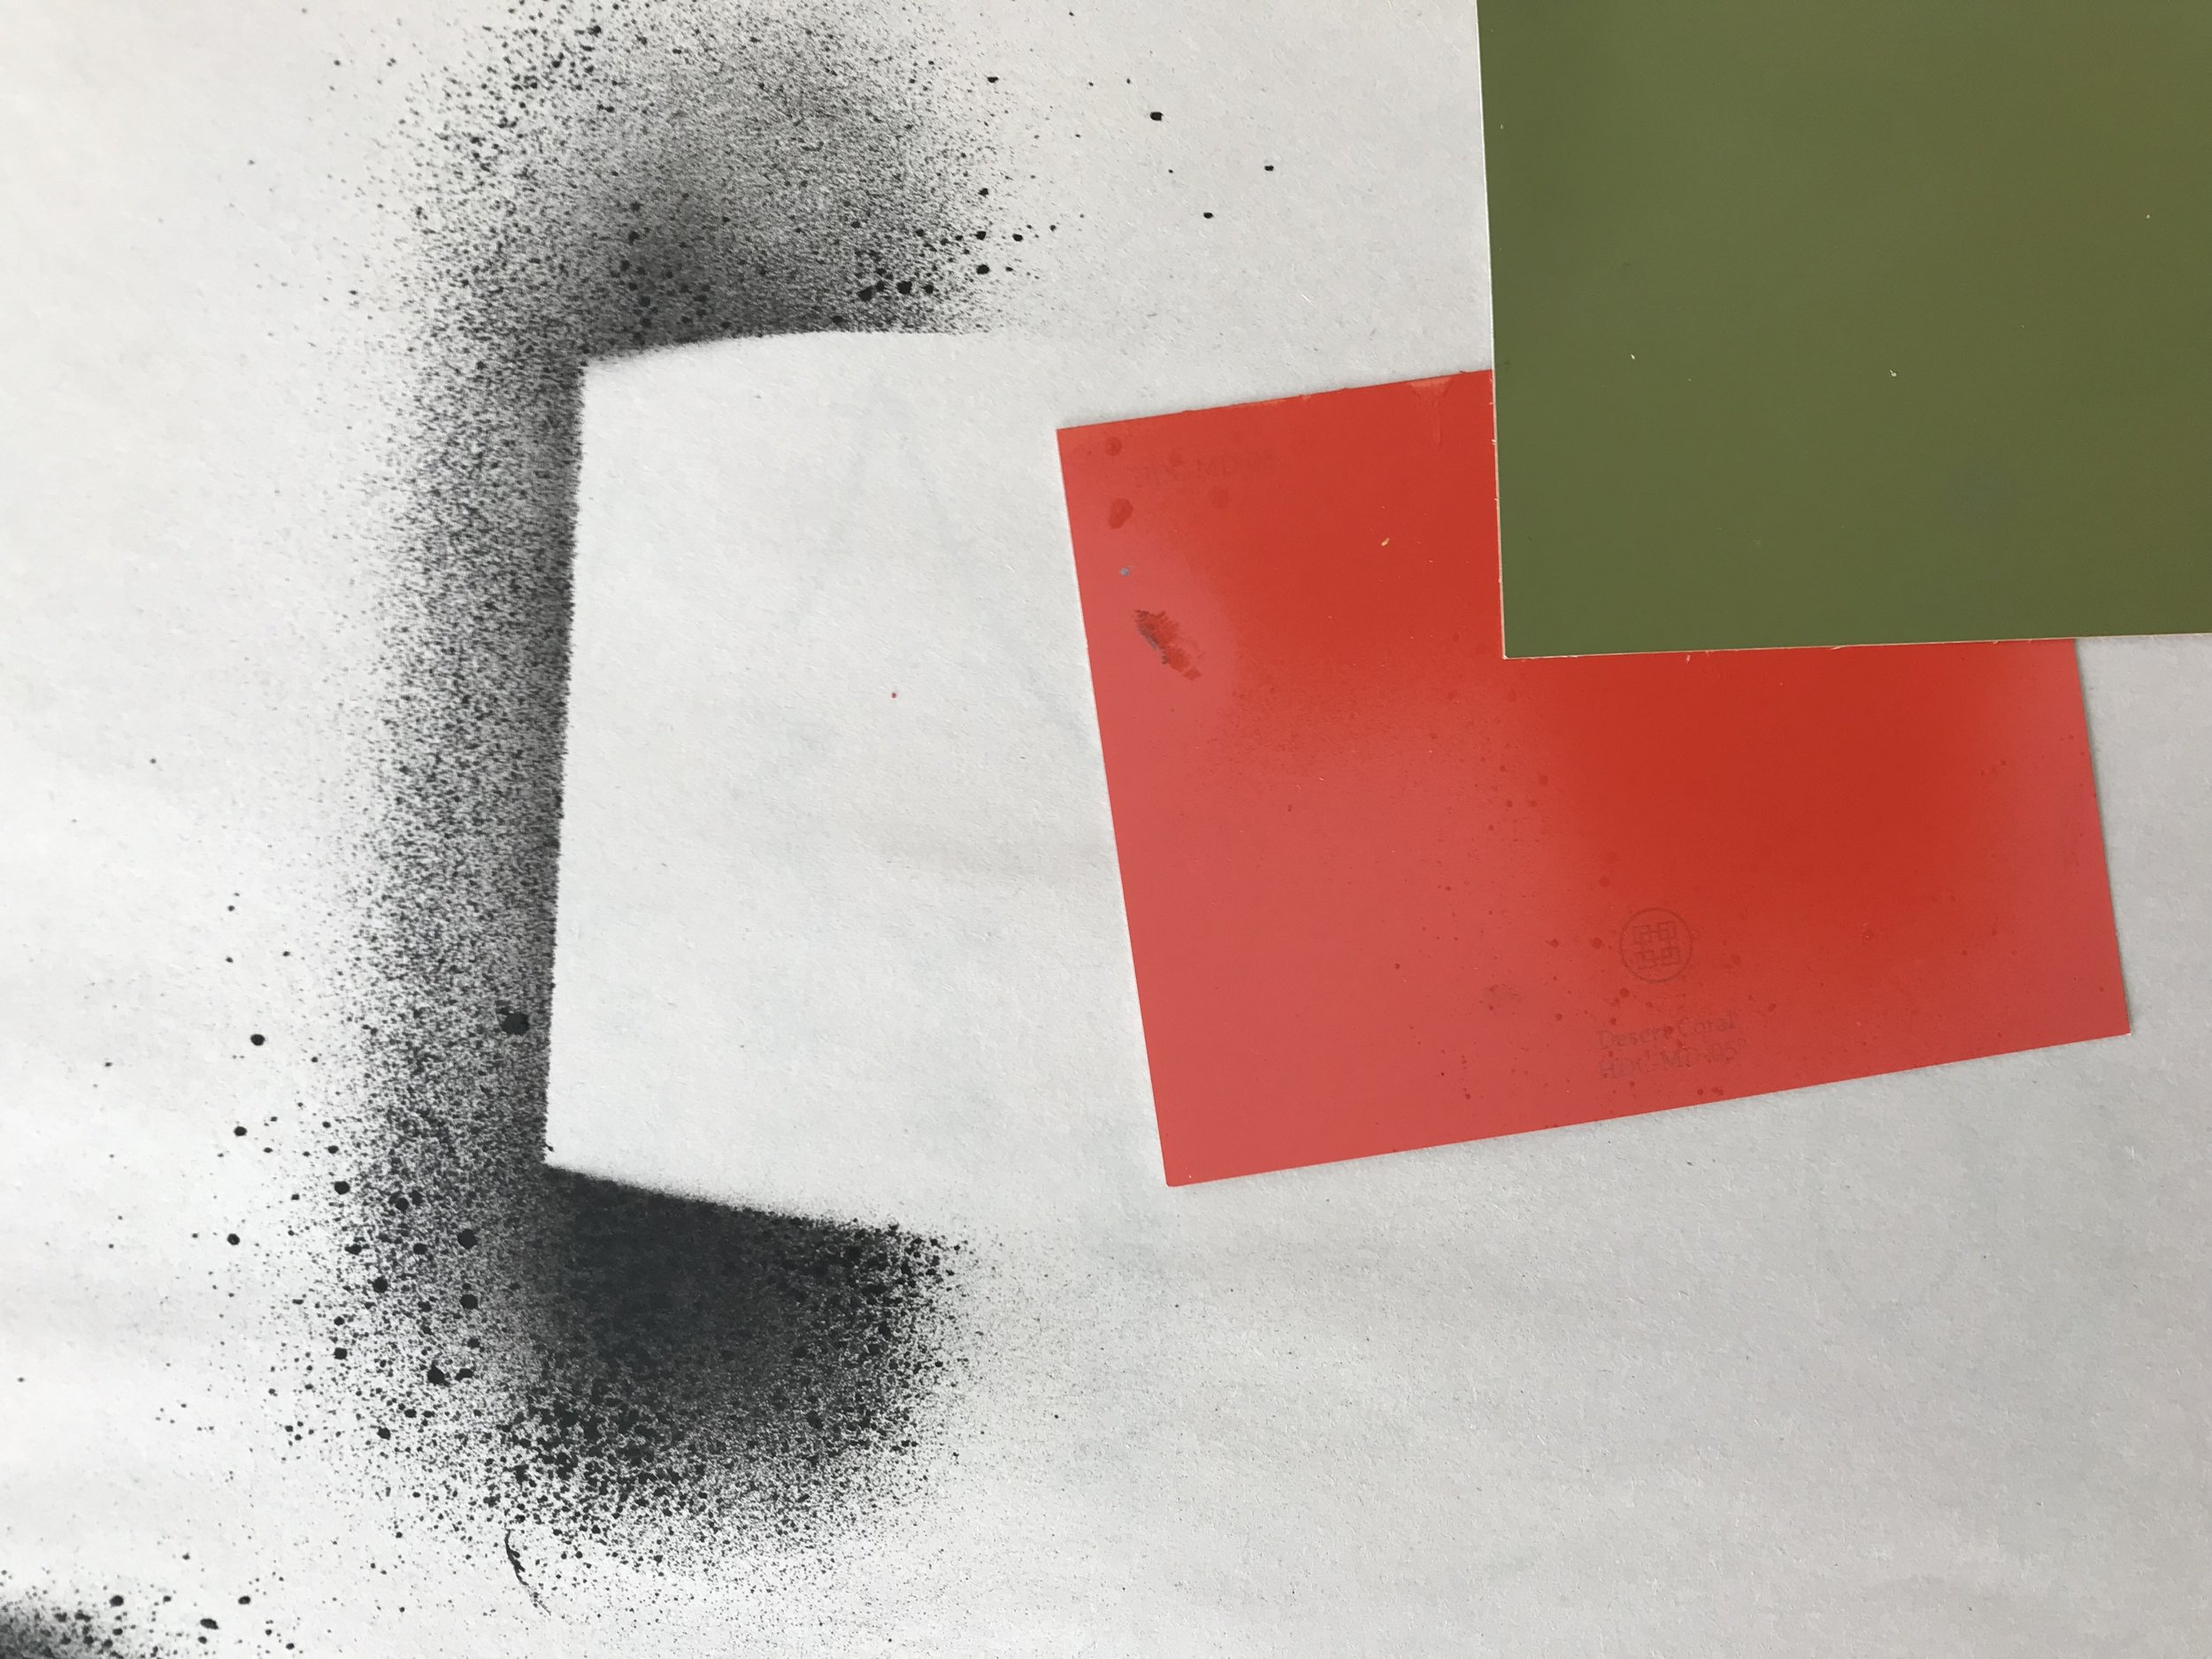 Pictured above are paint swatches used to create negative space. I began asking bigger questions such as: how can negative space show positive brand aesthetics?